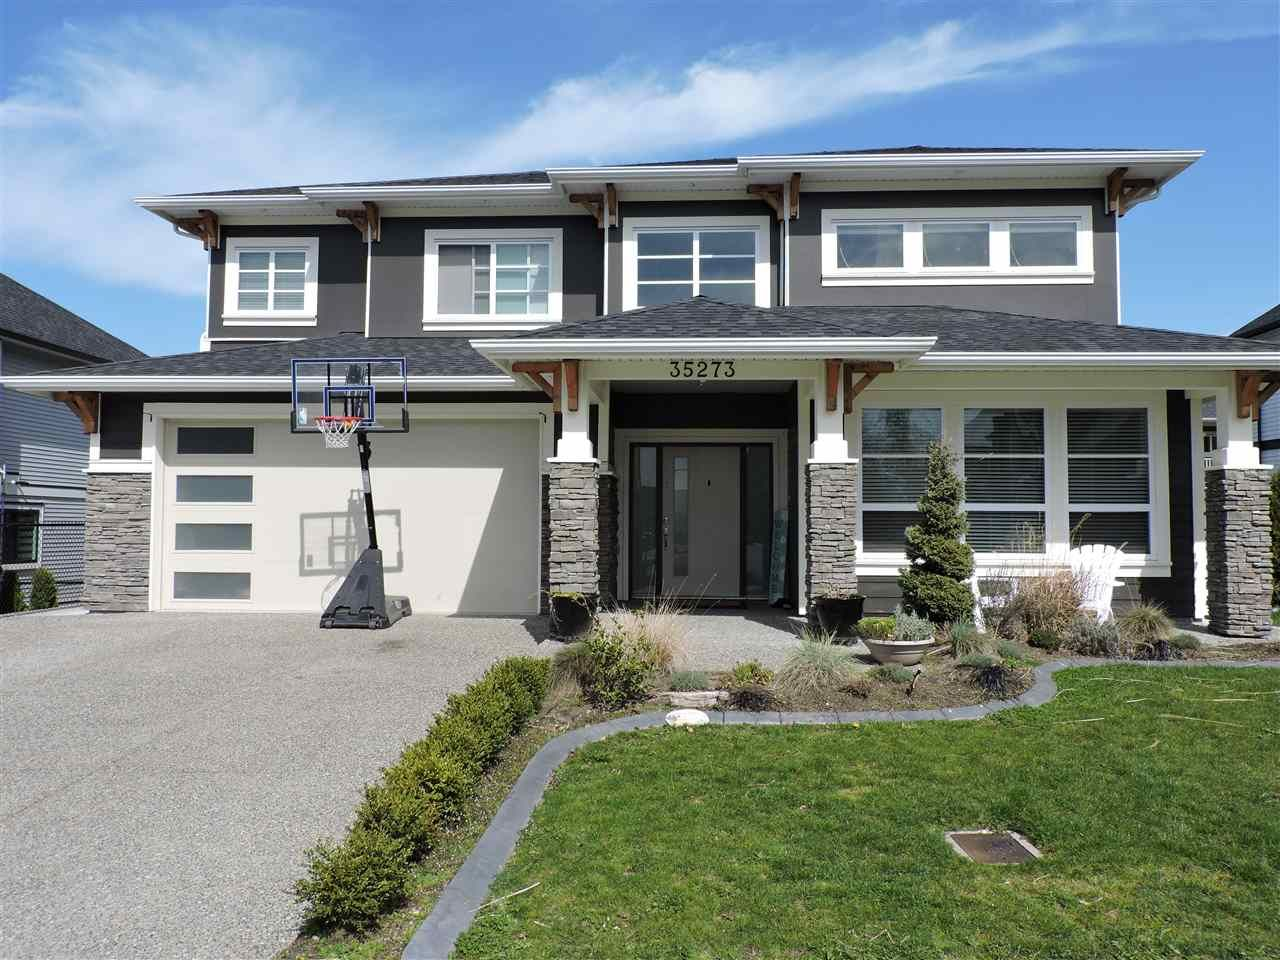 """Main Photo: 35273 ADAIR Avenue in Mission: Mission BC House for sale in """"Ferncliff Estates"""" : MLS®# R2559048"""